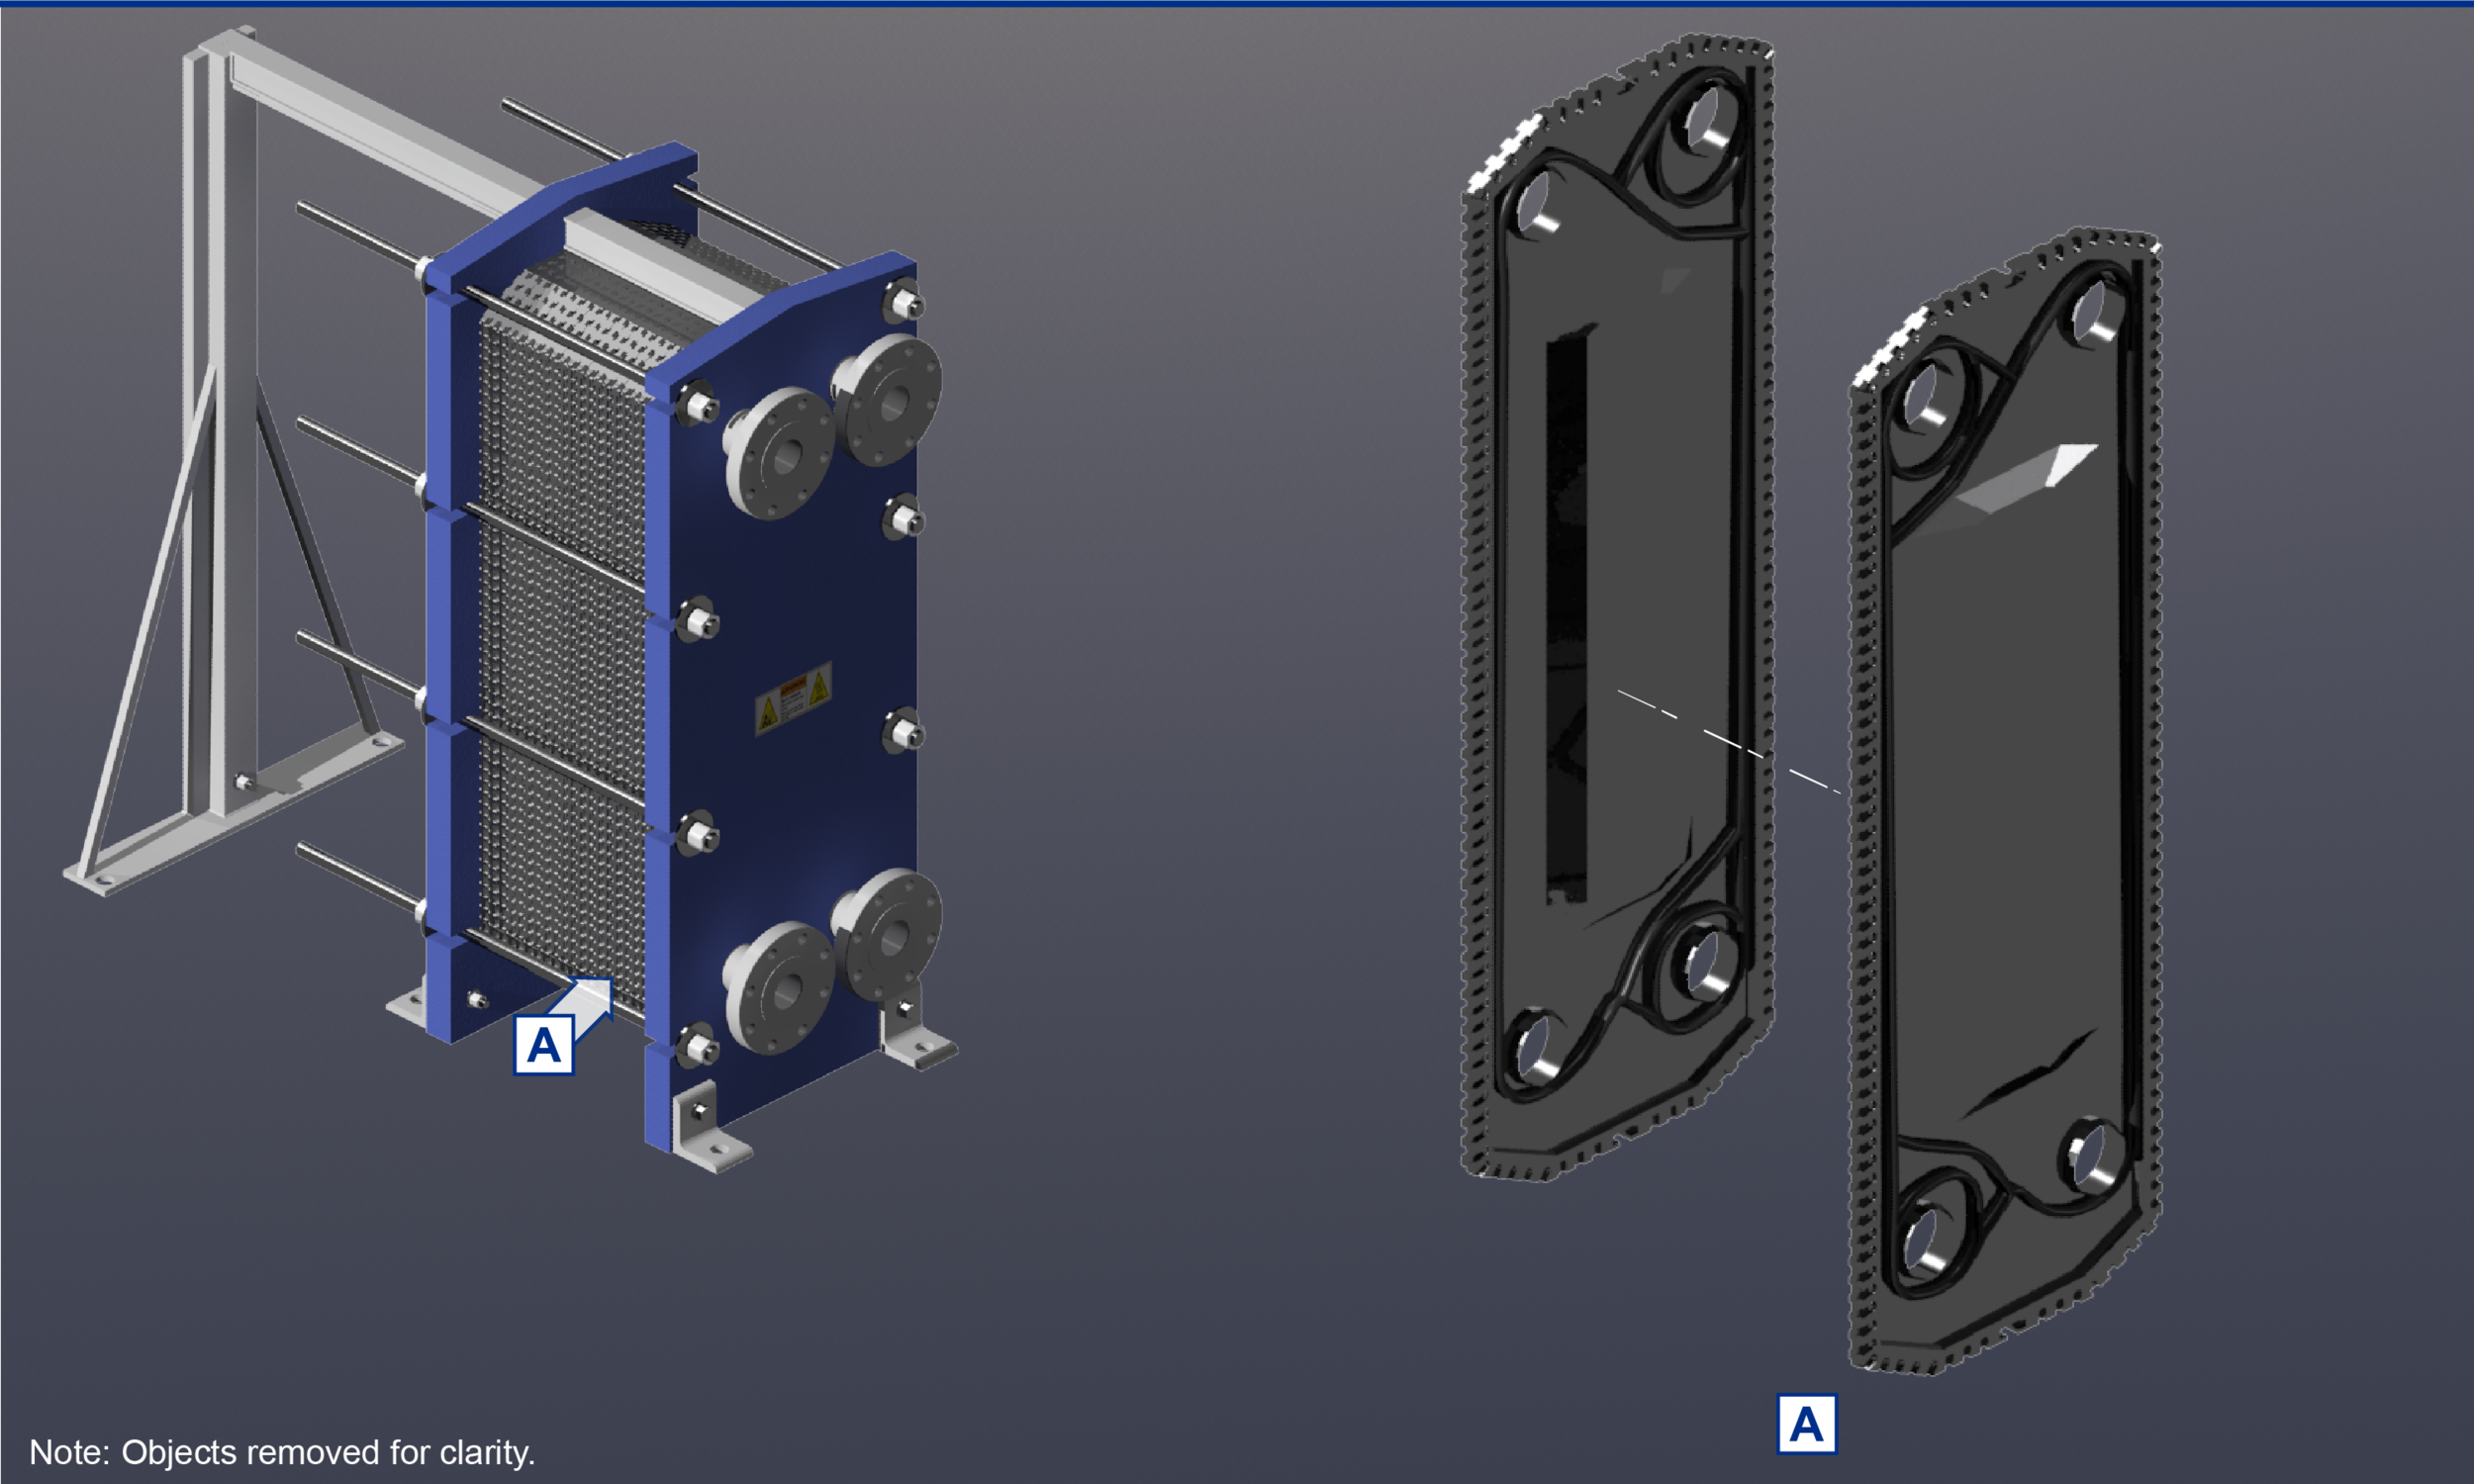 3dstudio max model of a heat exchanger with removable parts created from images off of website and brochure